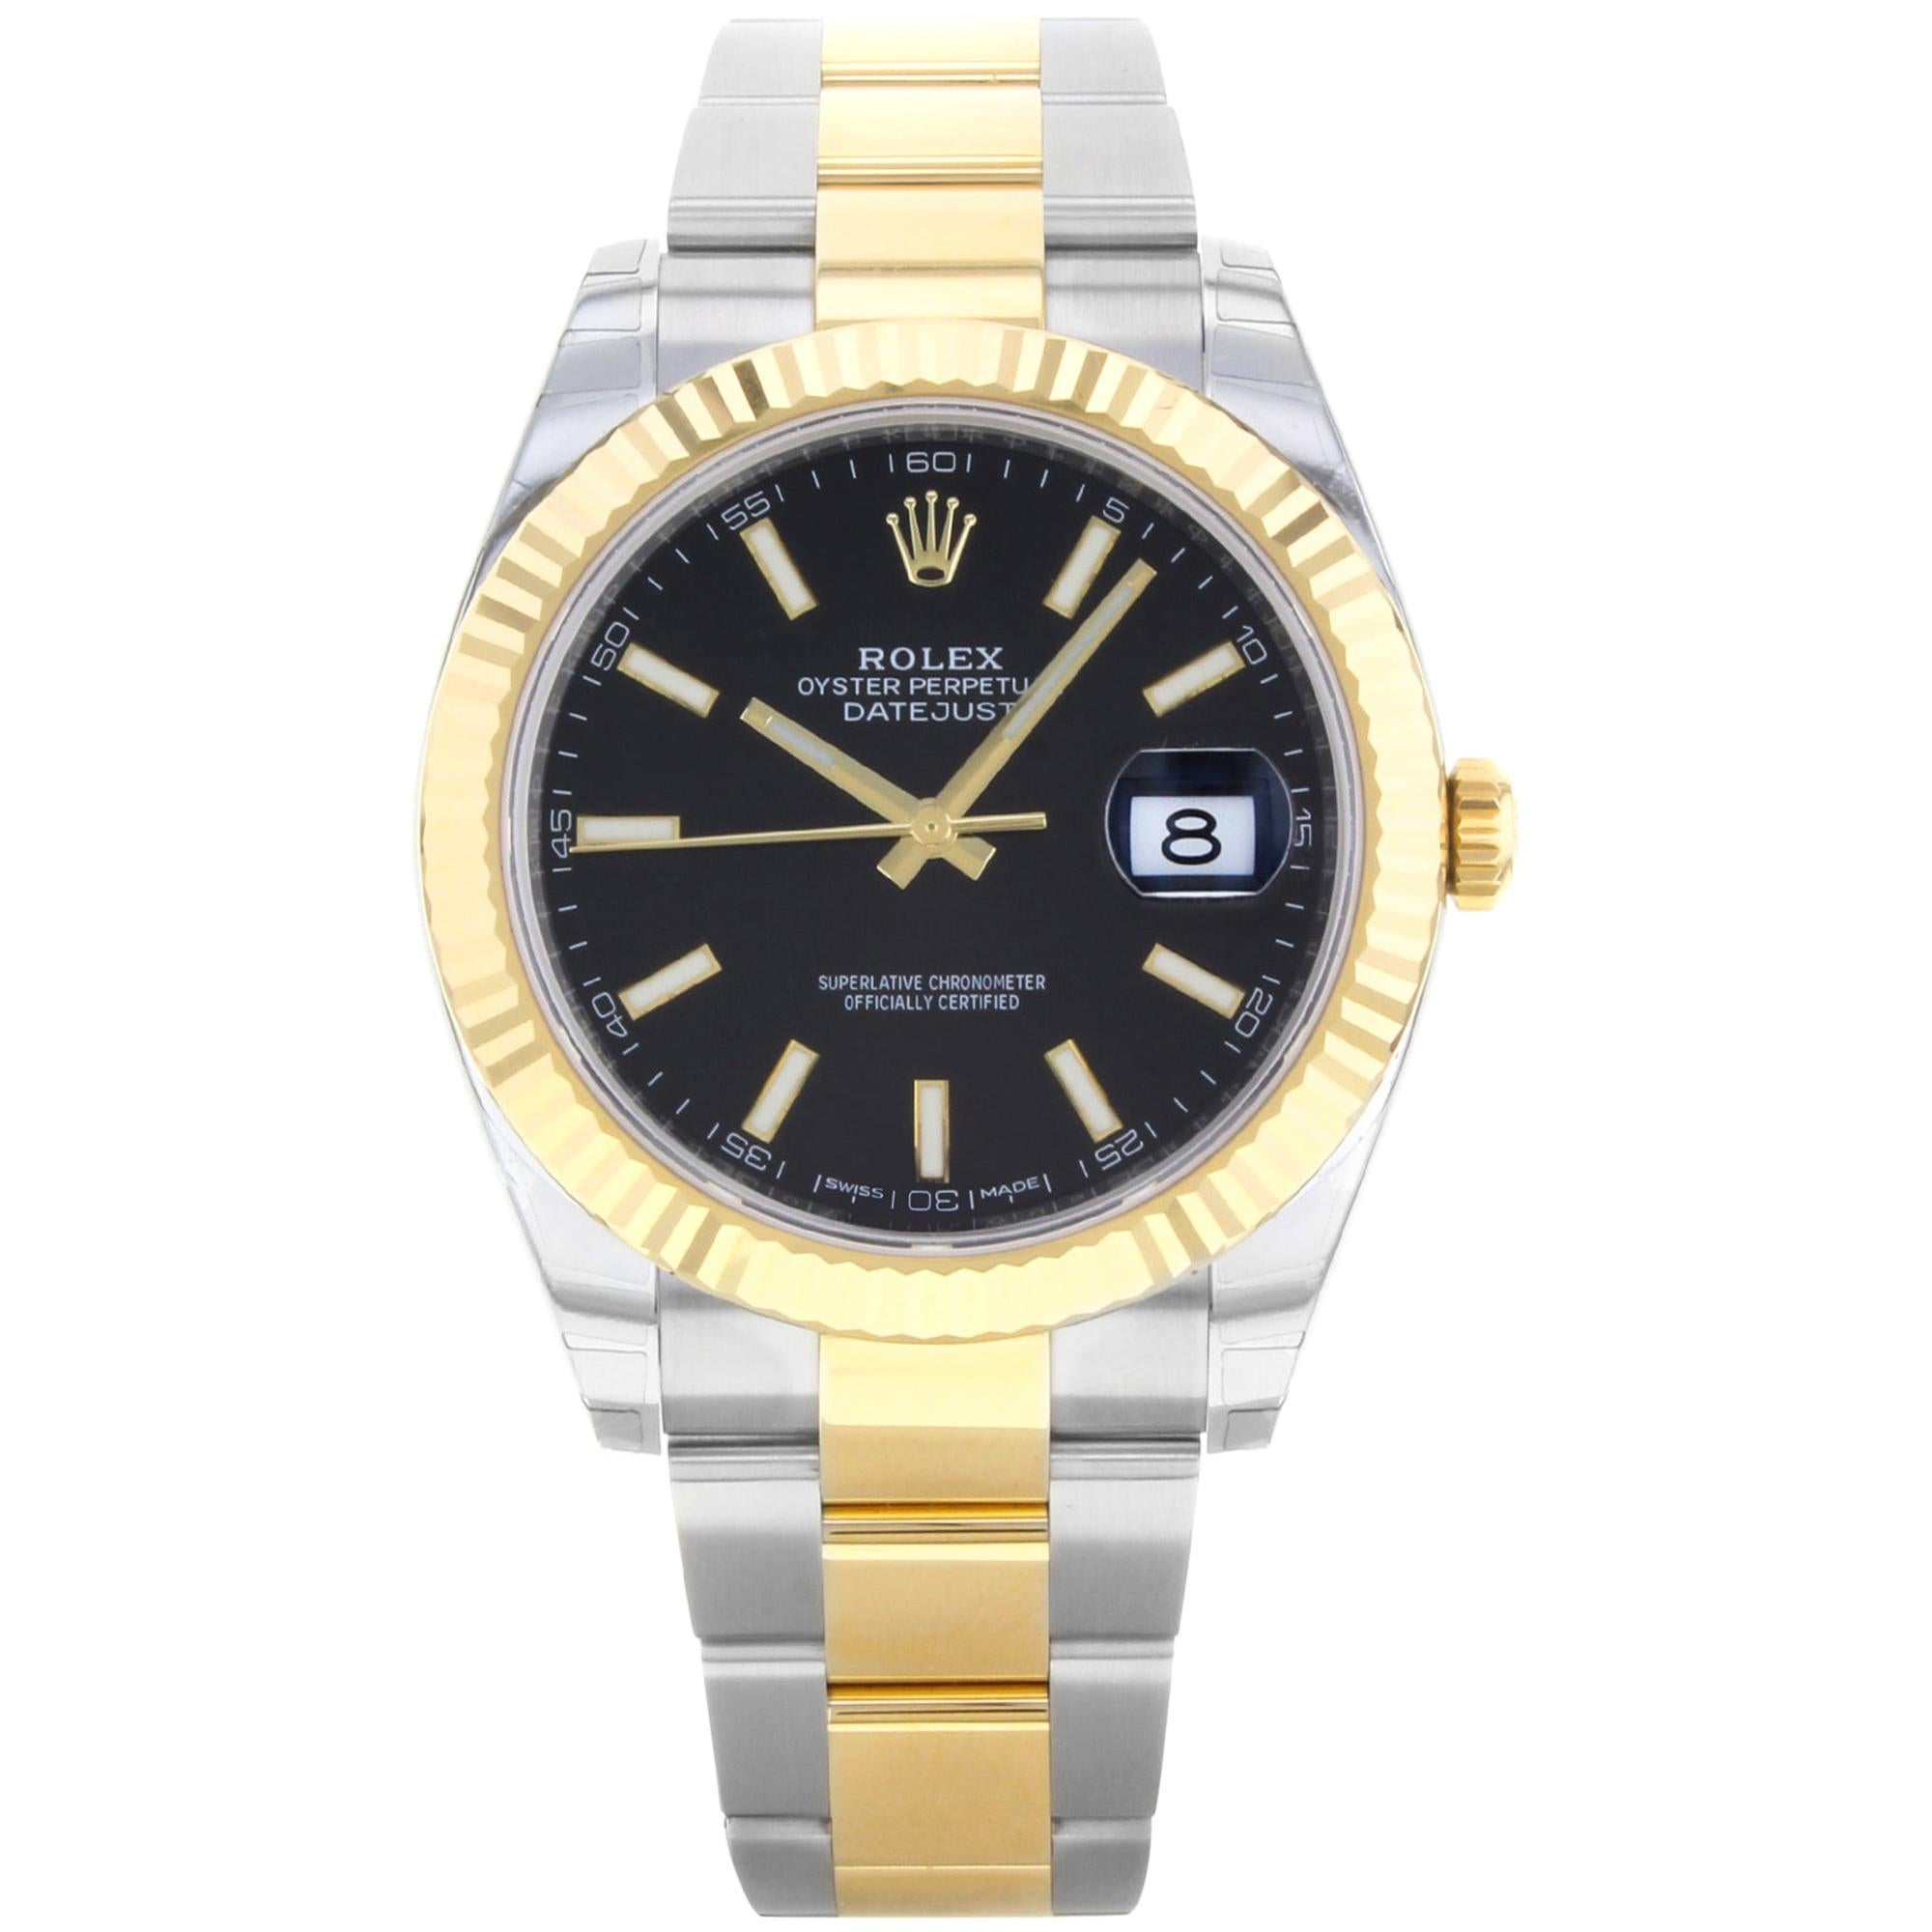 Rolex Datejust 41 Steel 18K Yellow Gold Black Dial Automatic Men's Watch 126333